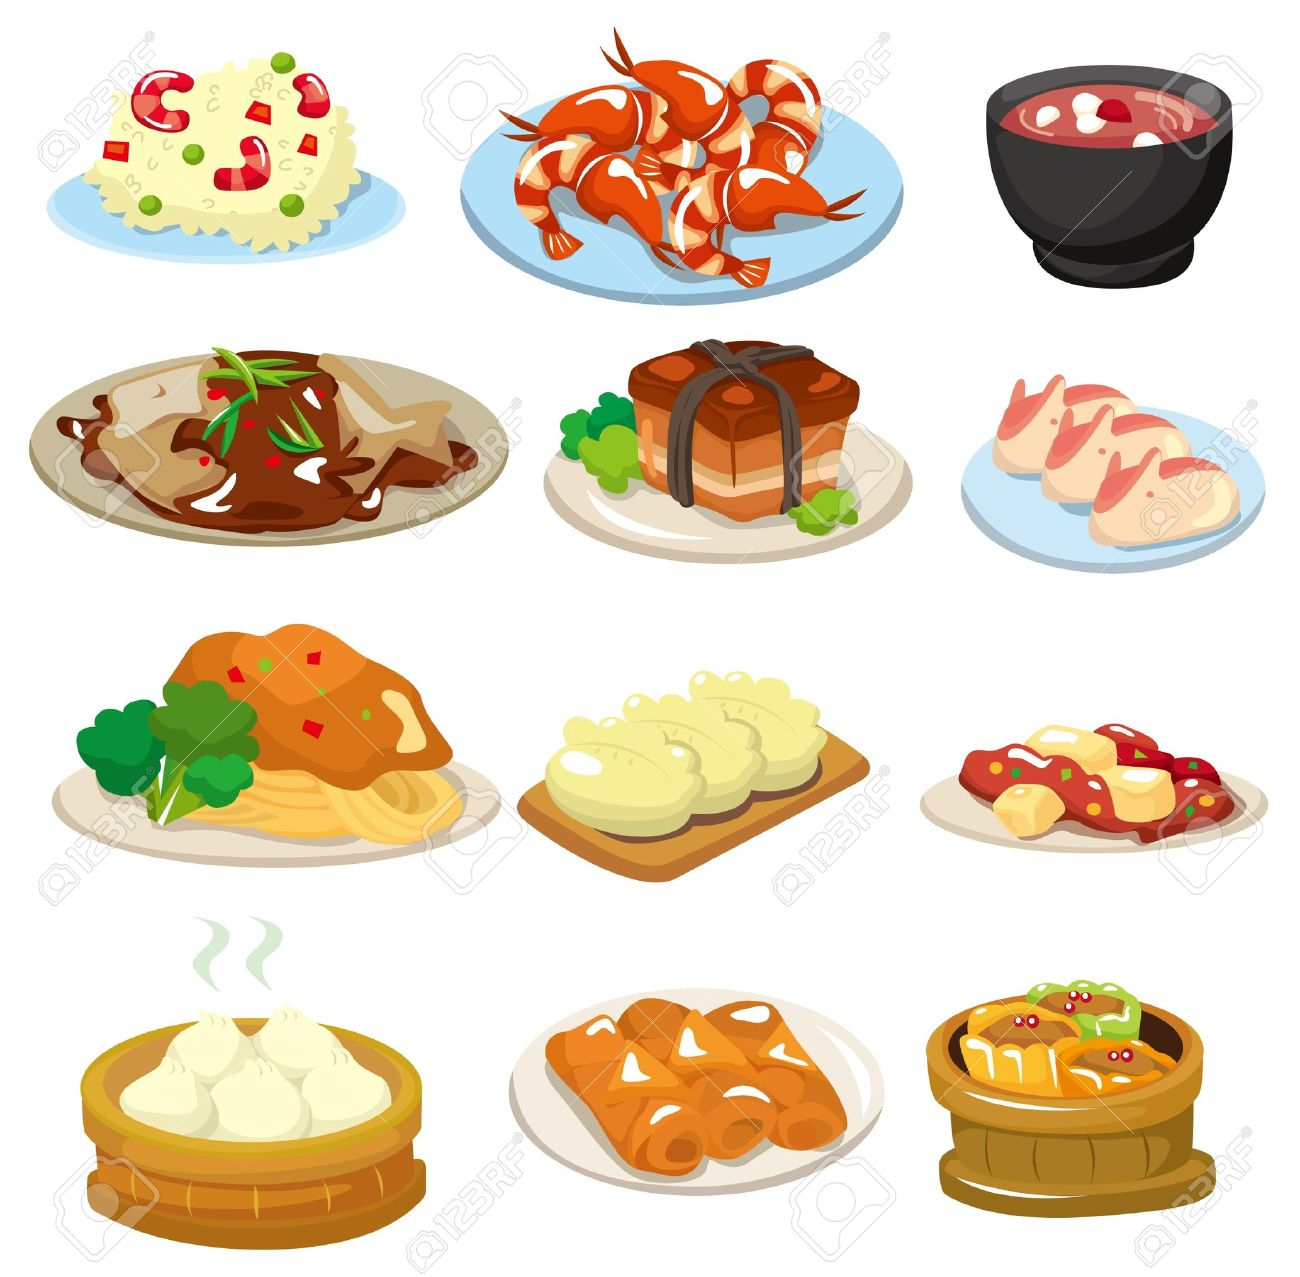 cartoon chinese food icon royalty free cliparts vectors and stock rh 123rf com chinese food clipart black and white chinese food clipart free